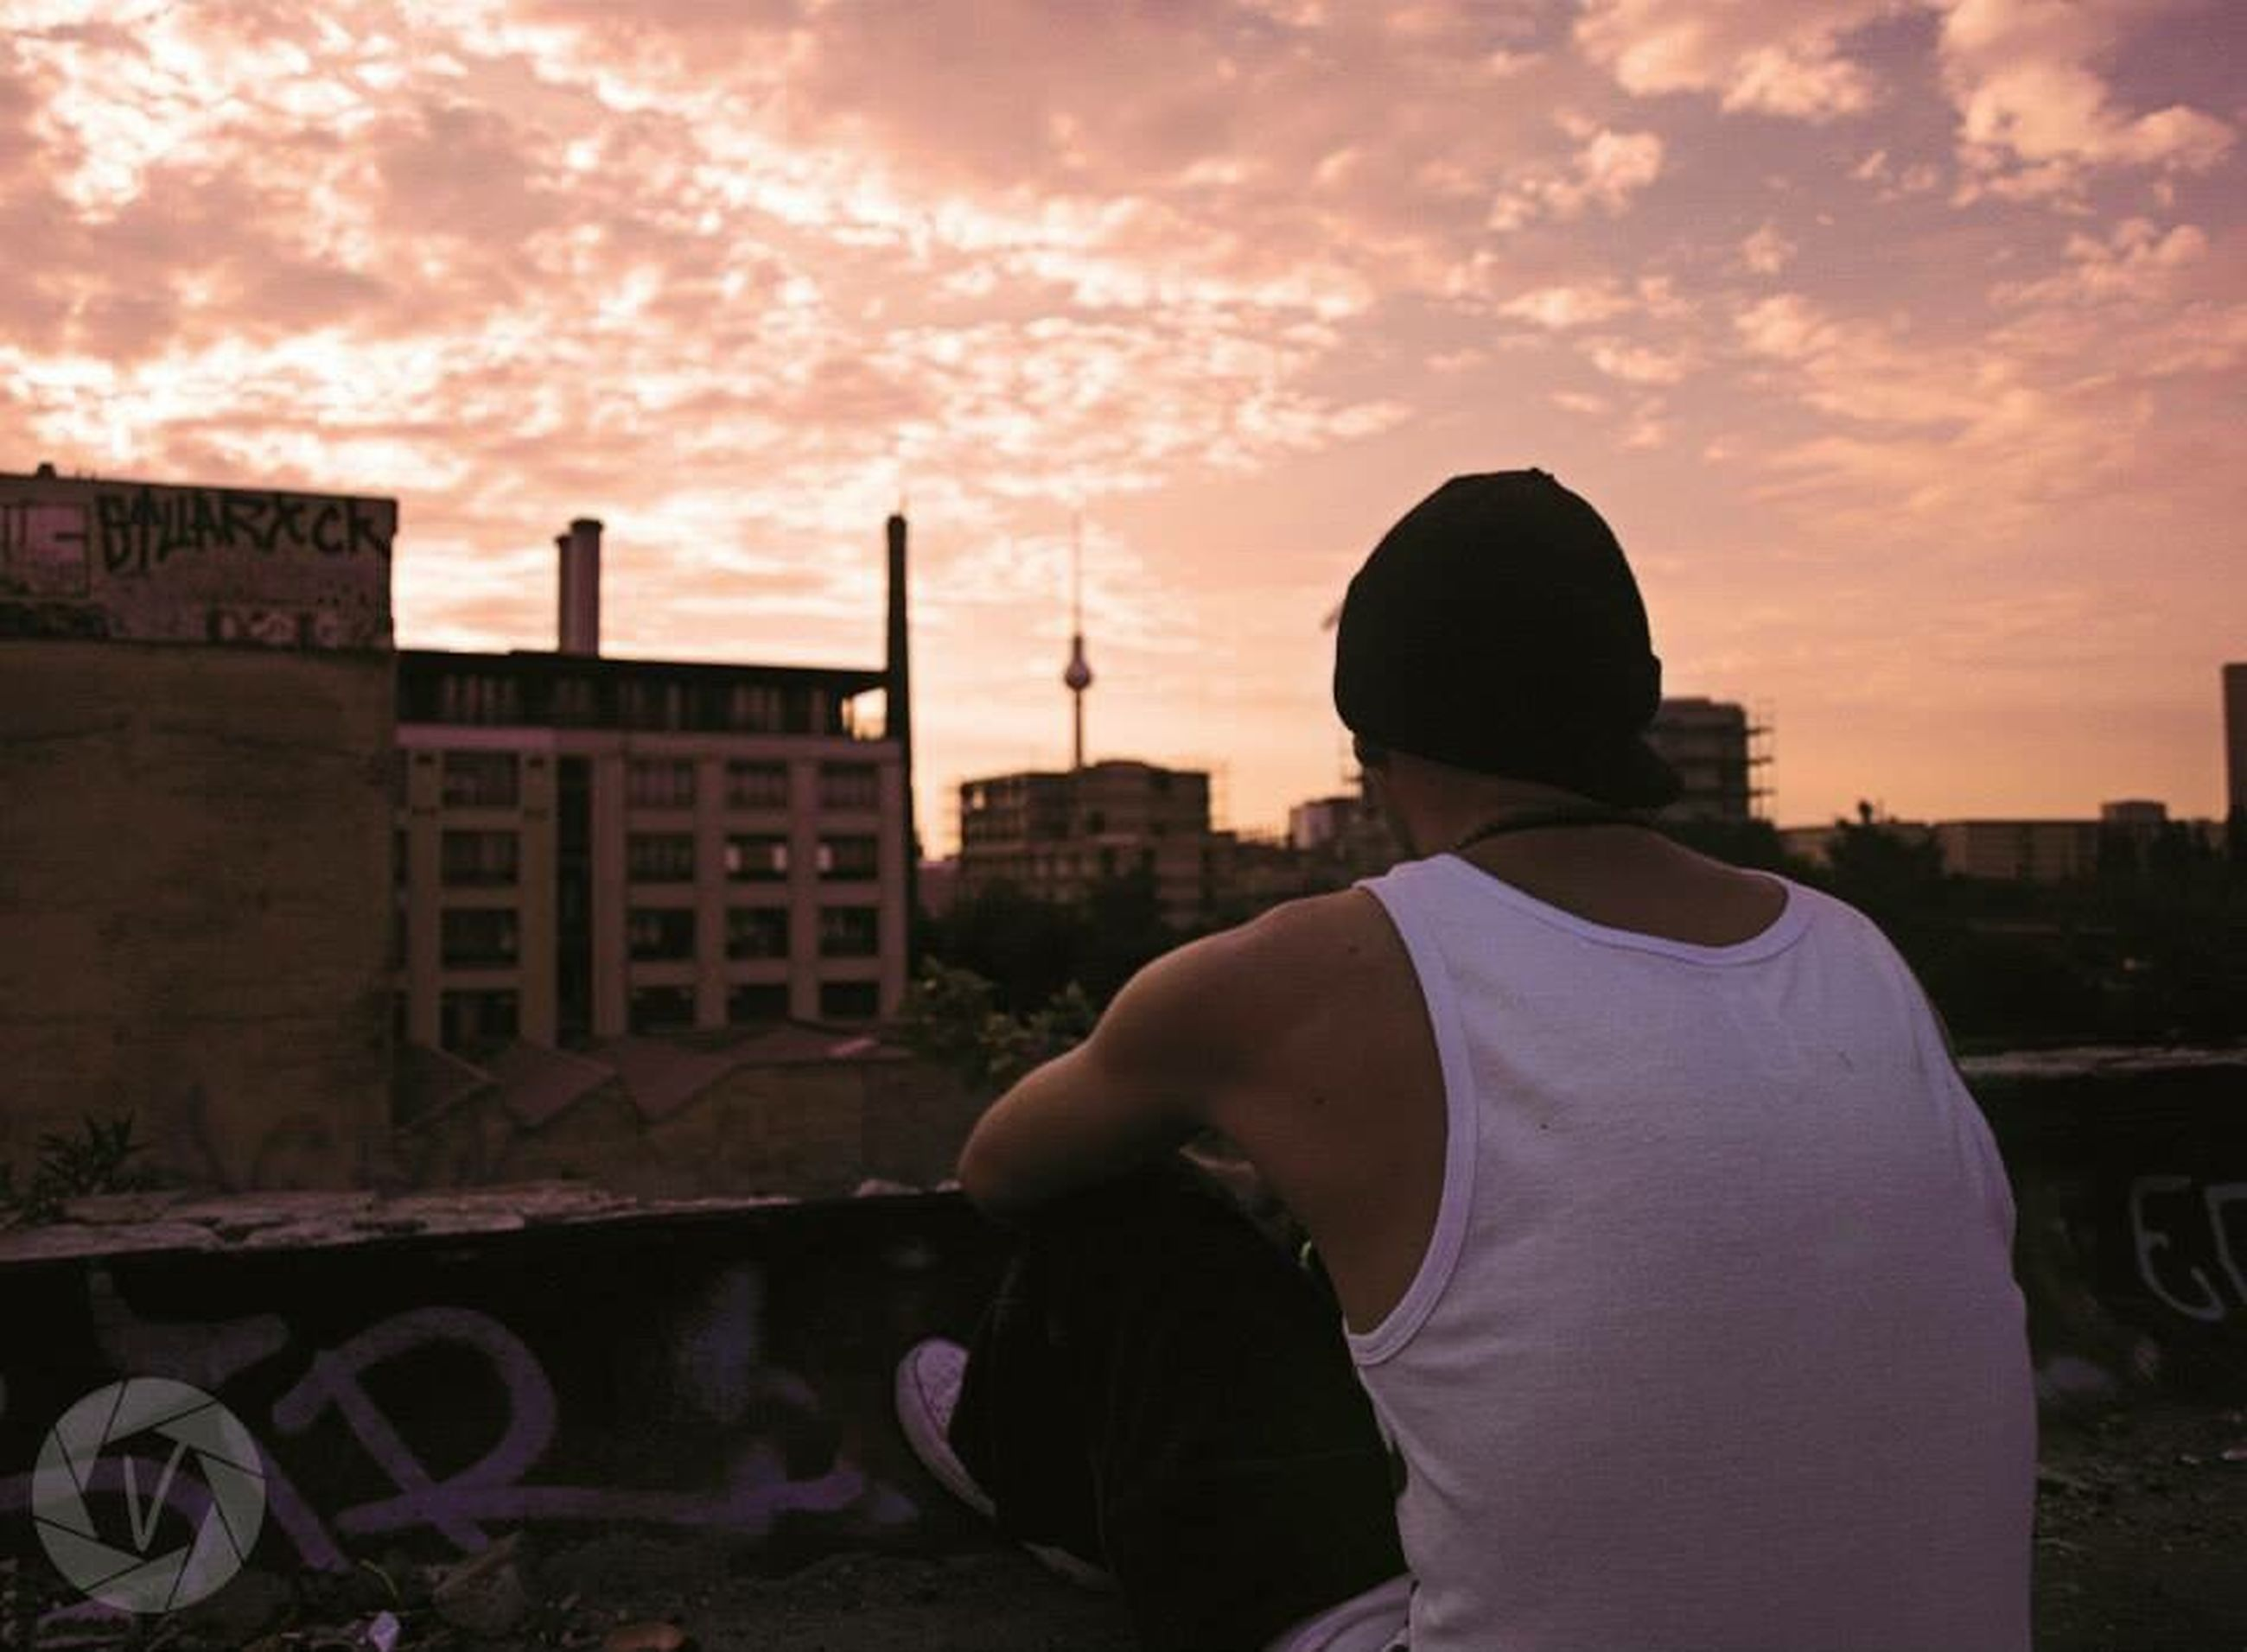 sky, sunset, cloud - sky, building exterior, lifestyles, rear view, built structure, architecture, leisure activity, cloud, waist up, cloudy, standing, three quarter length, men, city, person, casual clothing